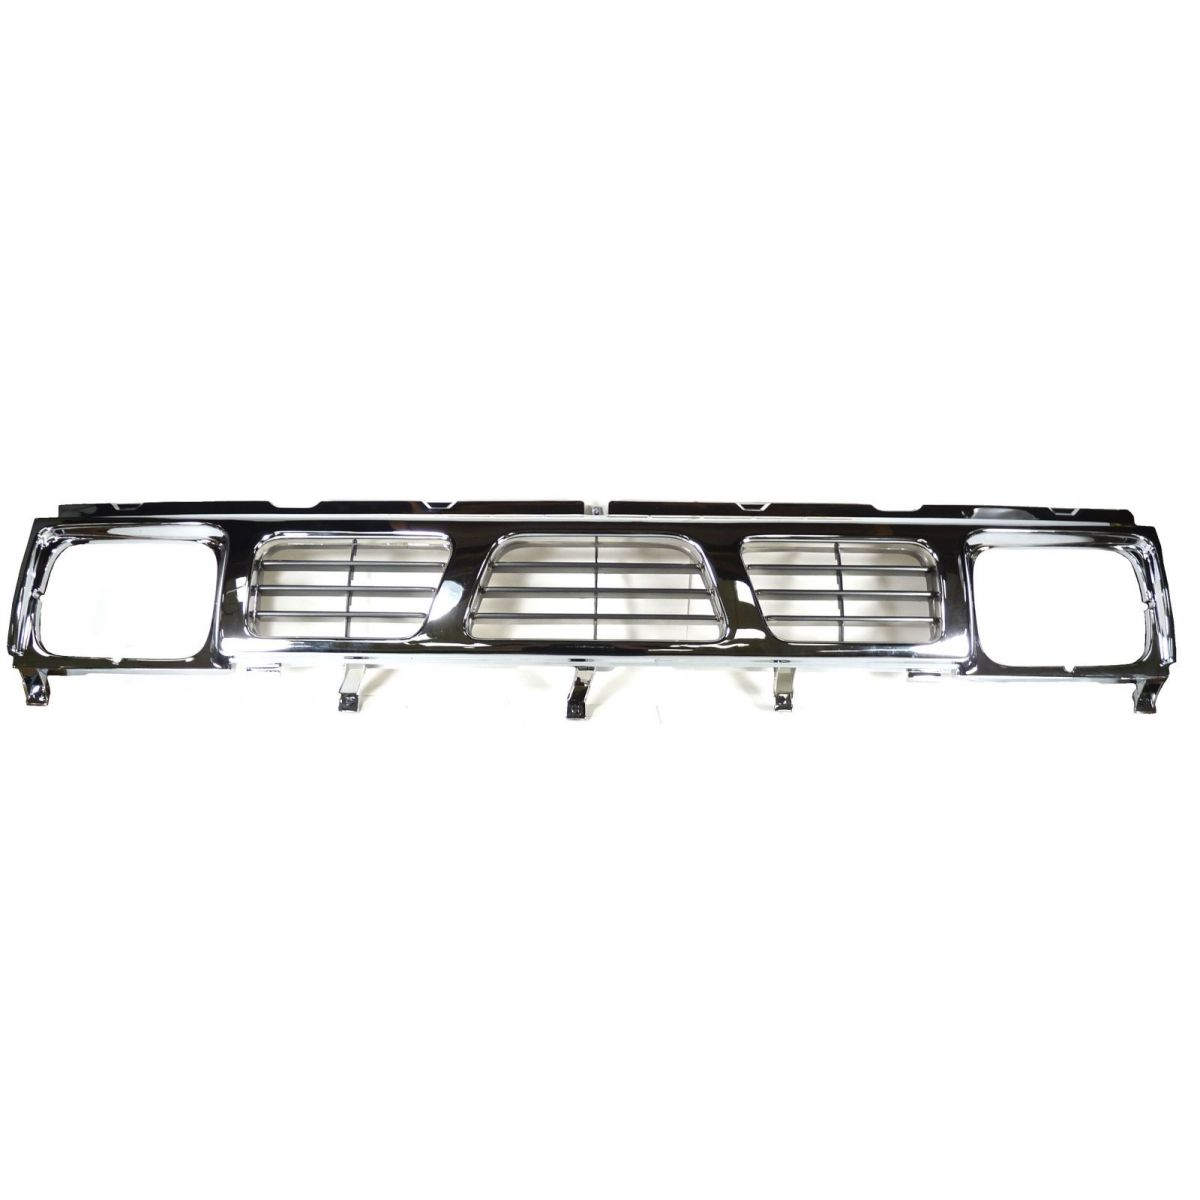 hight resolution of grille grill black chrome front end for 93 97 nissan d21 hardbody pickup truck